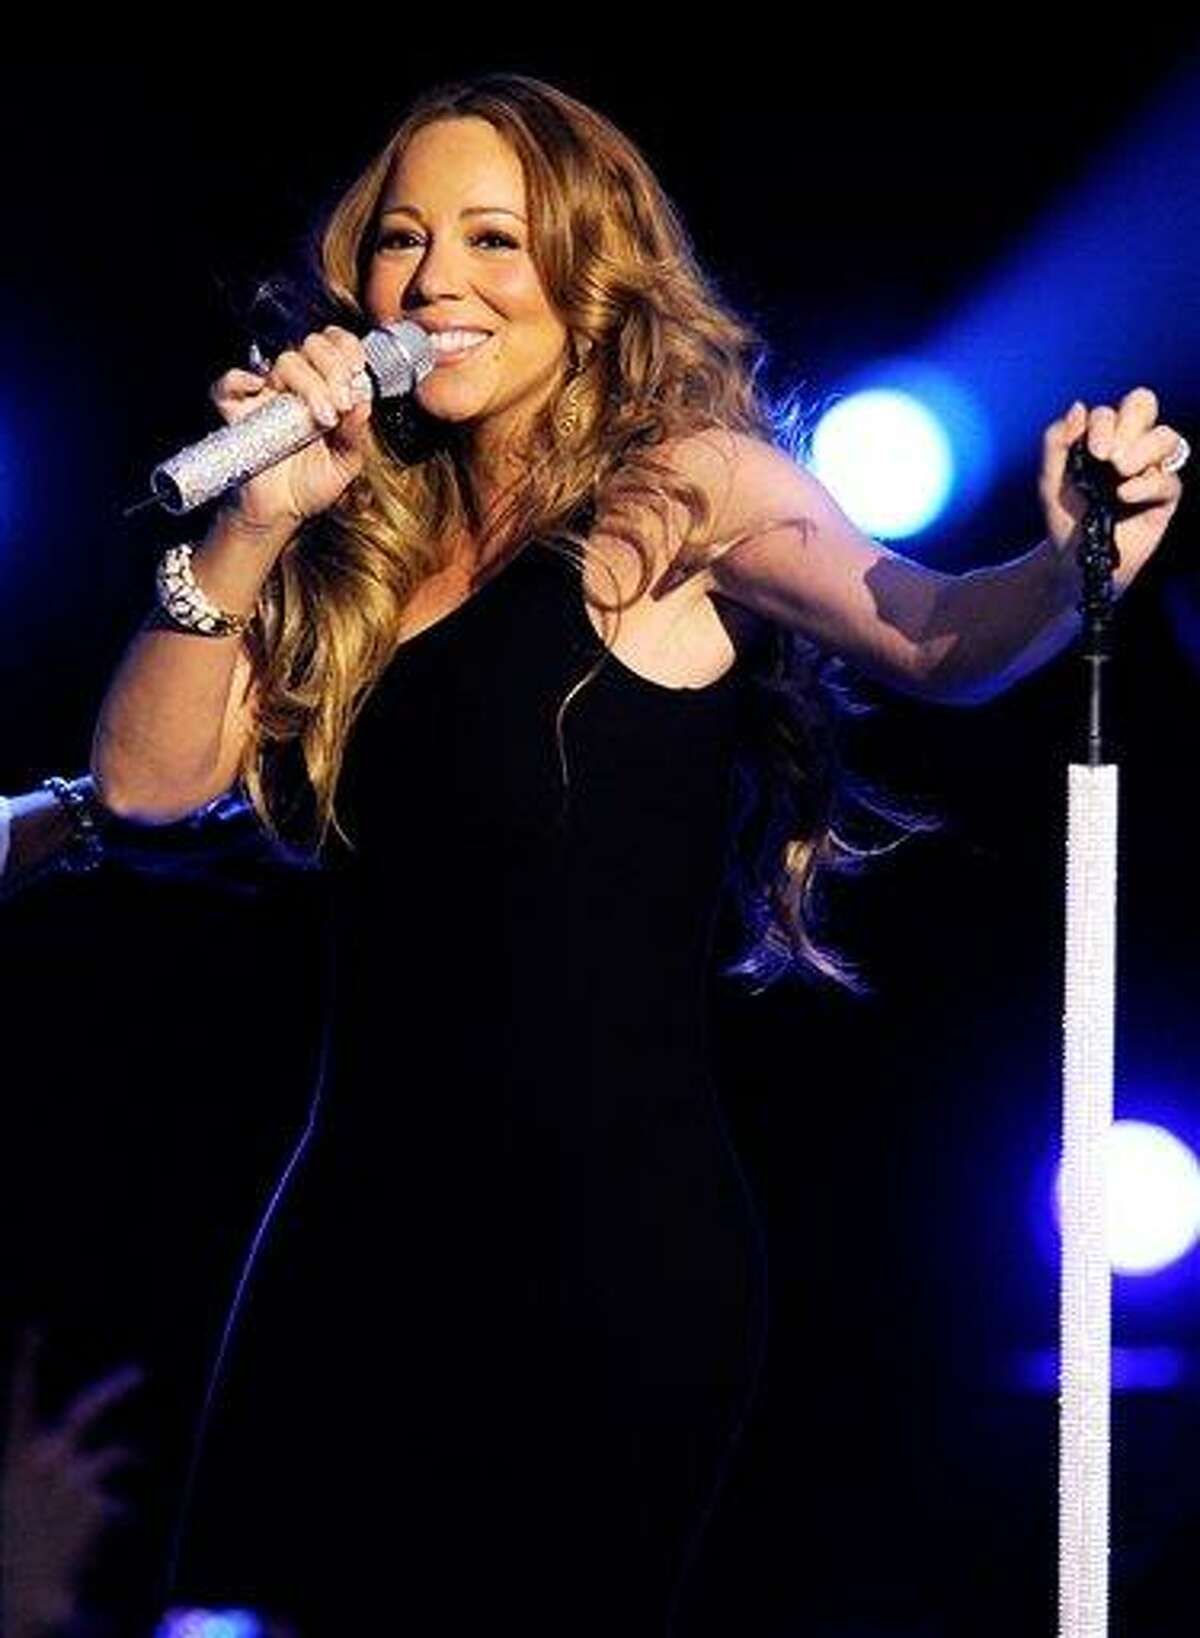 """Singer Mariah Carey performs at Caesars Entertainment """"Escape to Total Rewards"""" kick-off at Gotham Hall on Thursday in New York. Associated Press"""